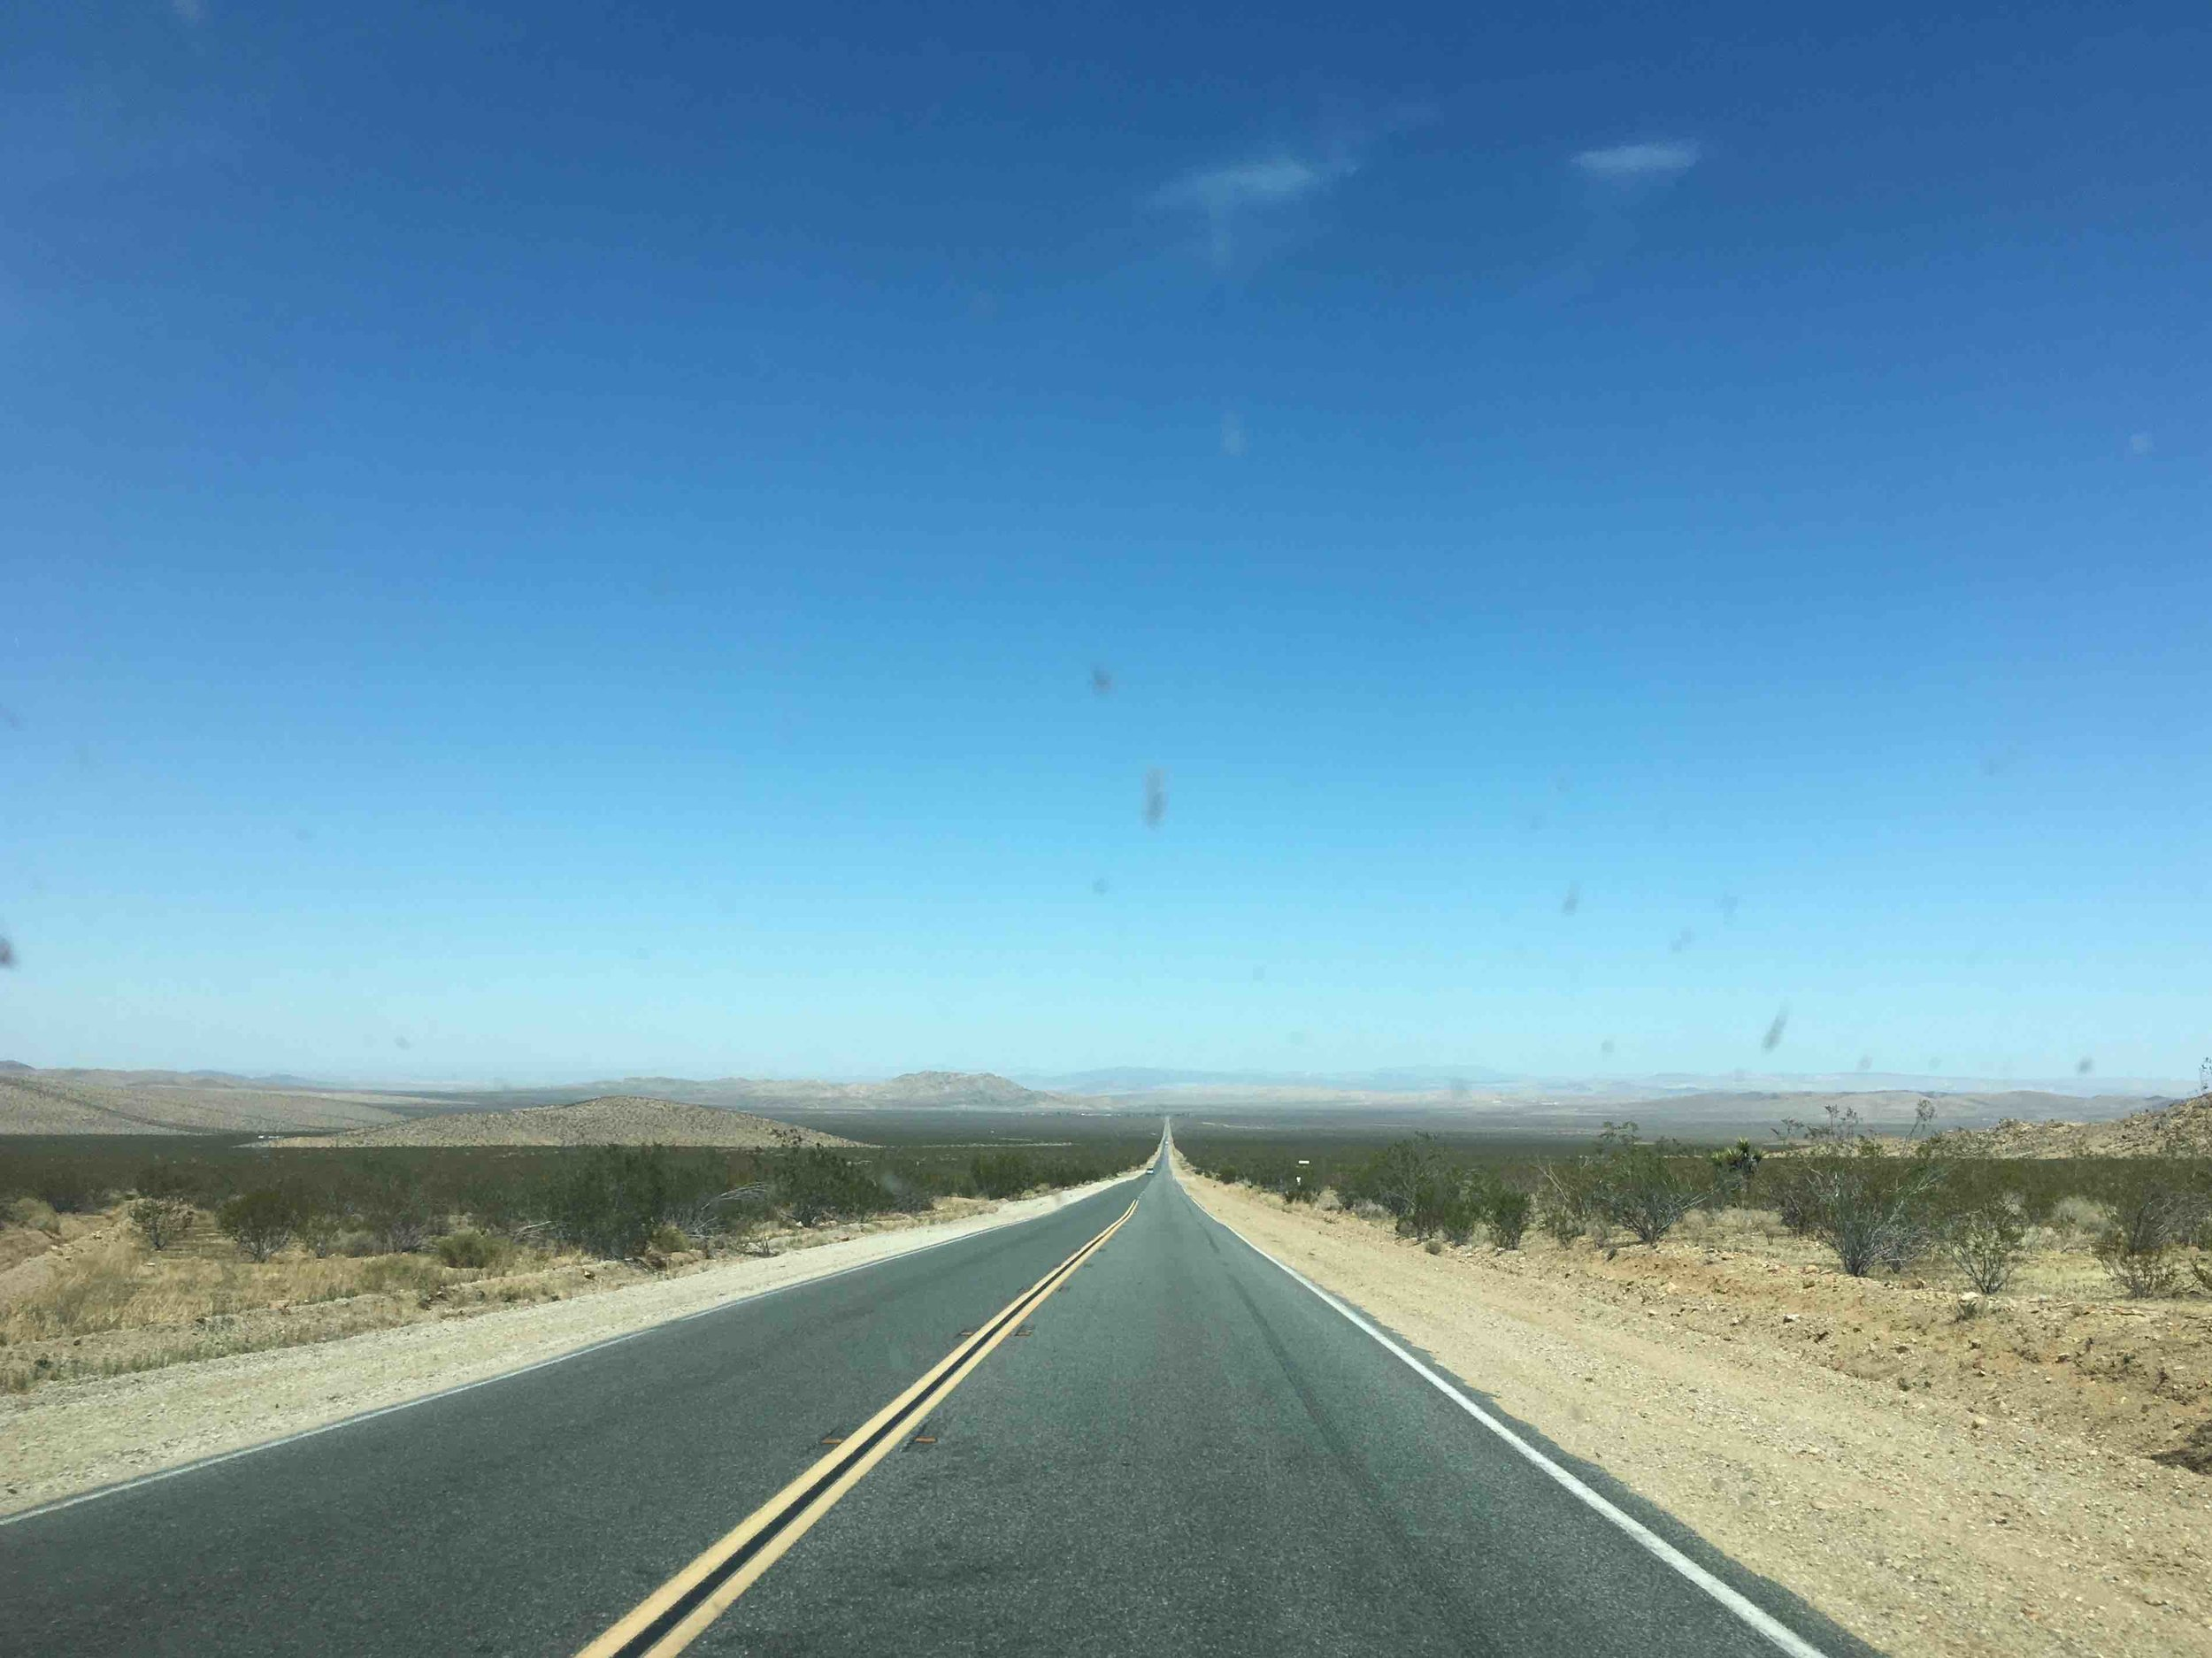 The road from Joshua Tree to Yosemite, as seen through our WINDSHIELD.